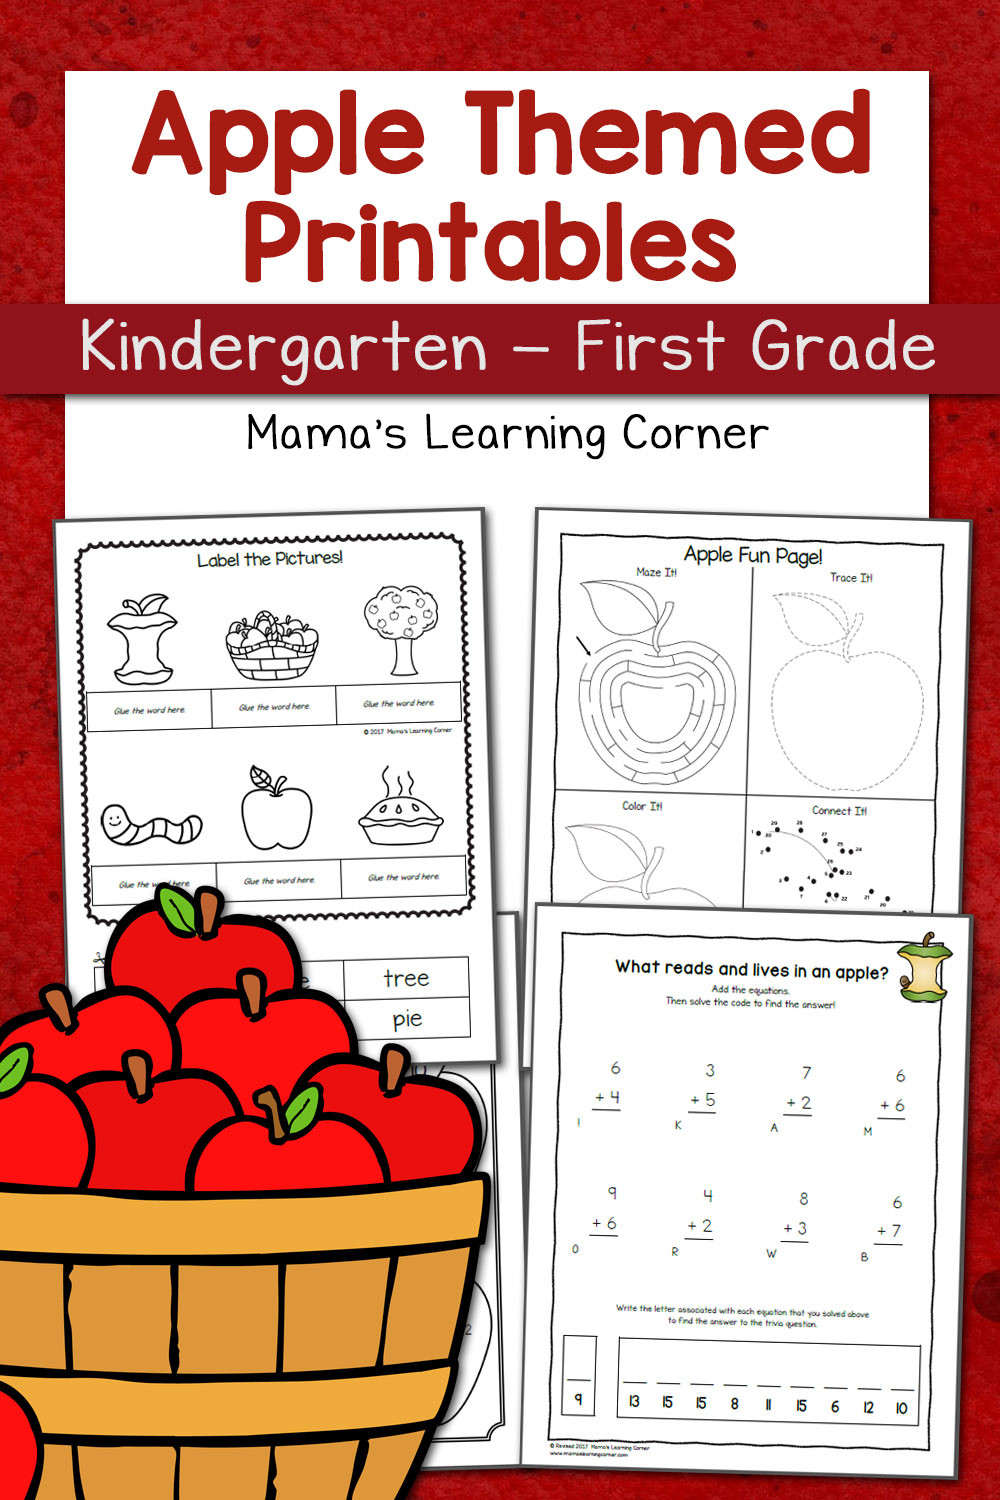 Apple Worksheets Kindergarten Apple Worksheets for Kindergarten First Grade Mamas